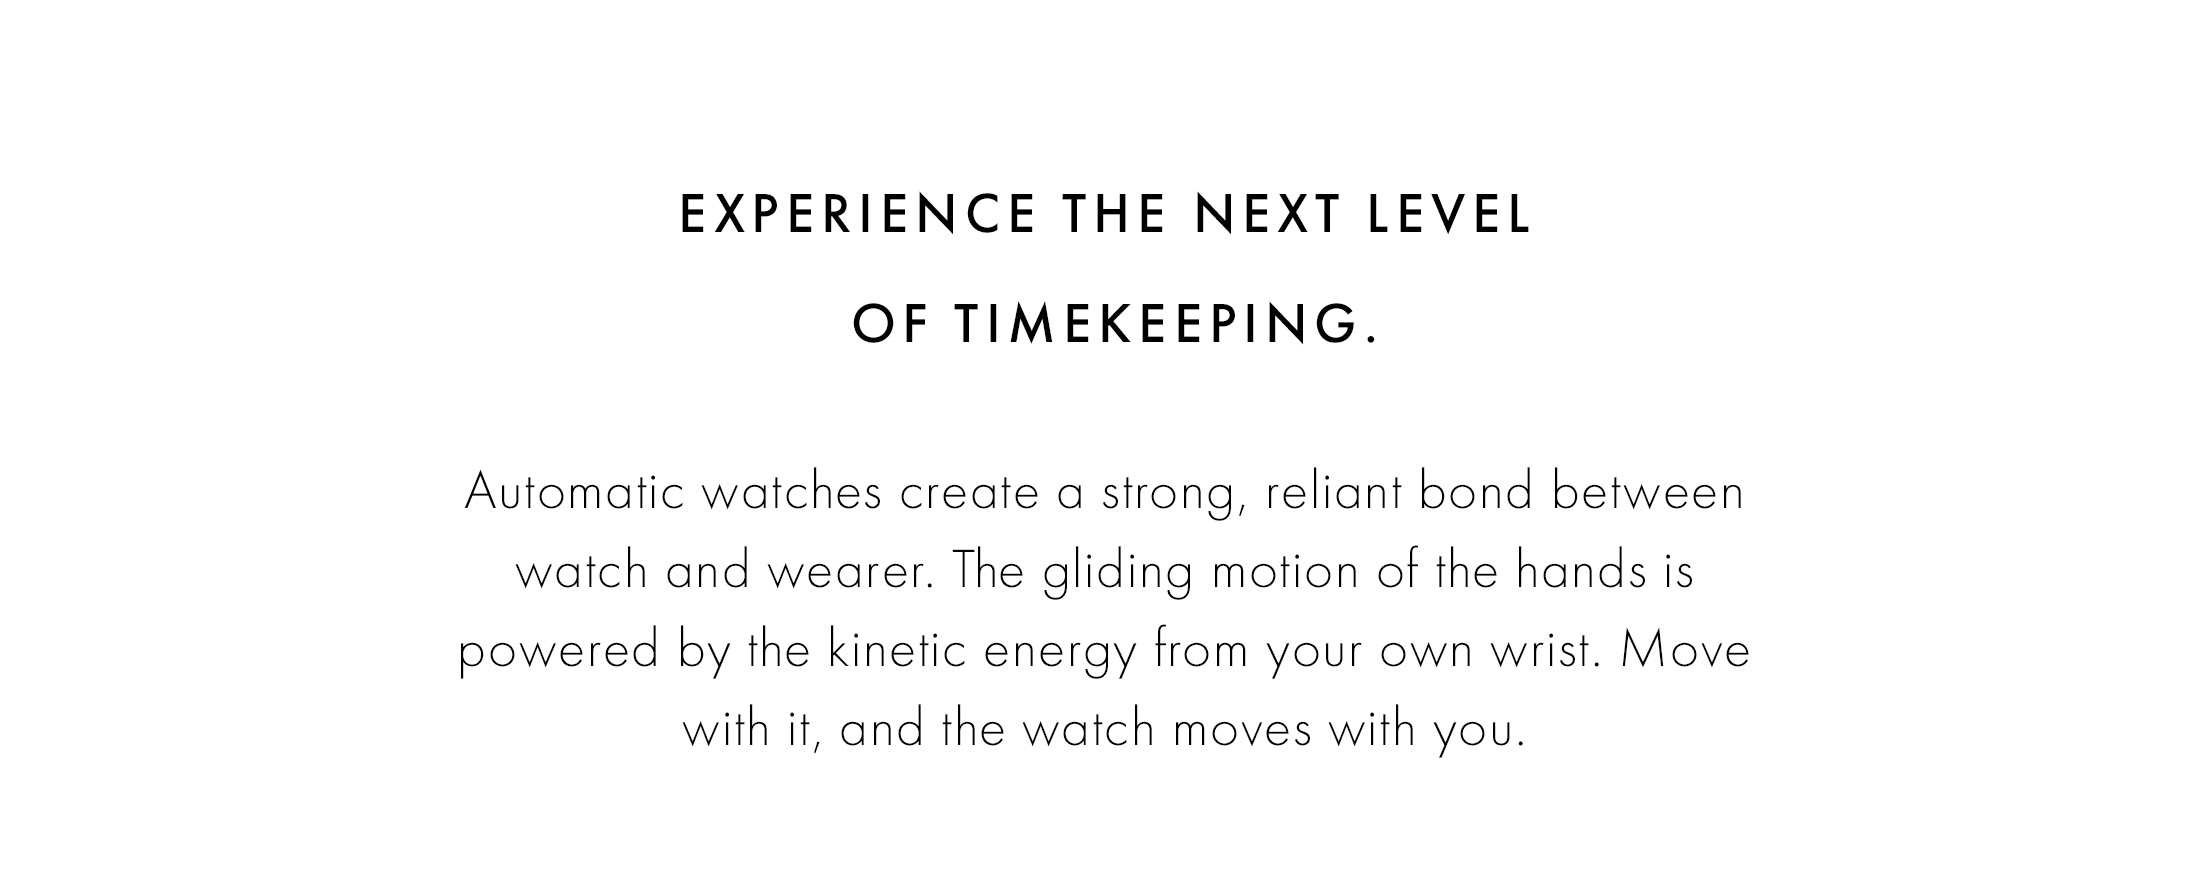 Experience the next level of timekeeping.